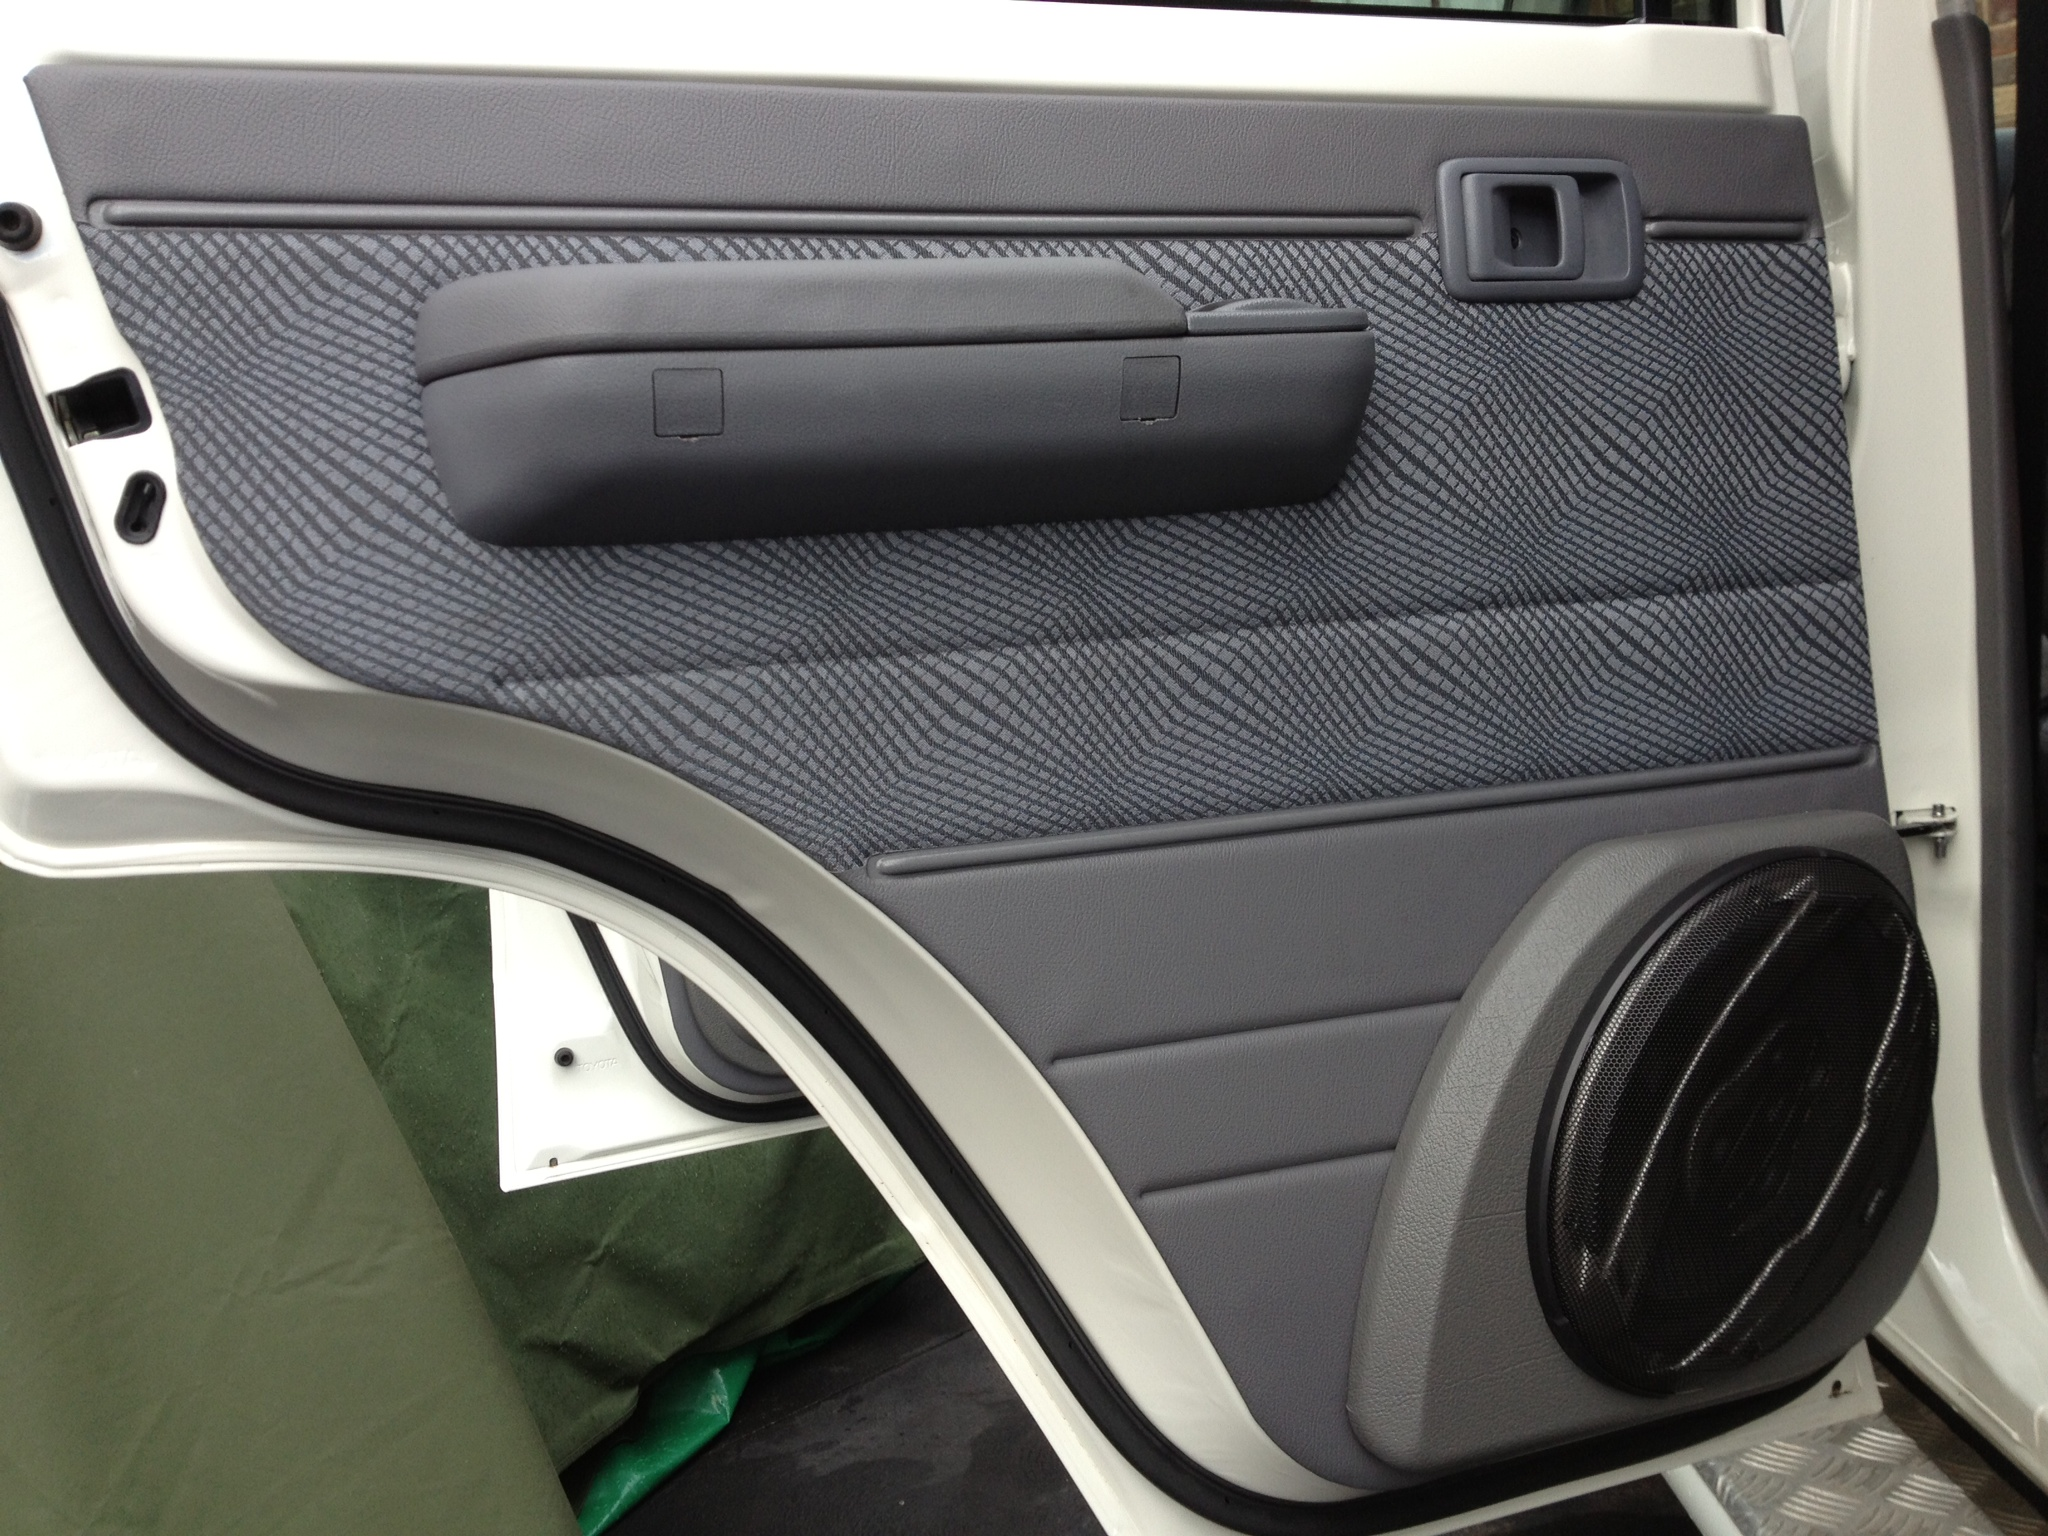 #495B40   Cairns Customs   Car Sound Highly Rated 9379 Air Conditioning Units Cairns wallpapers with 2048x1536 px on helpvideos.info - Air Conditioners, Air Coolers and more